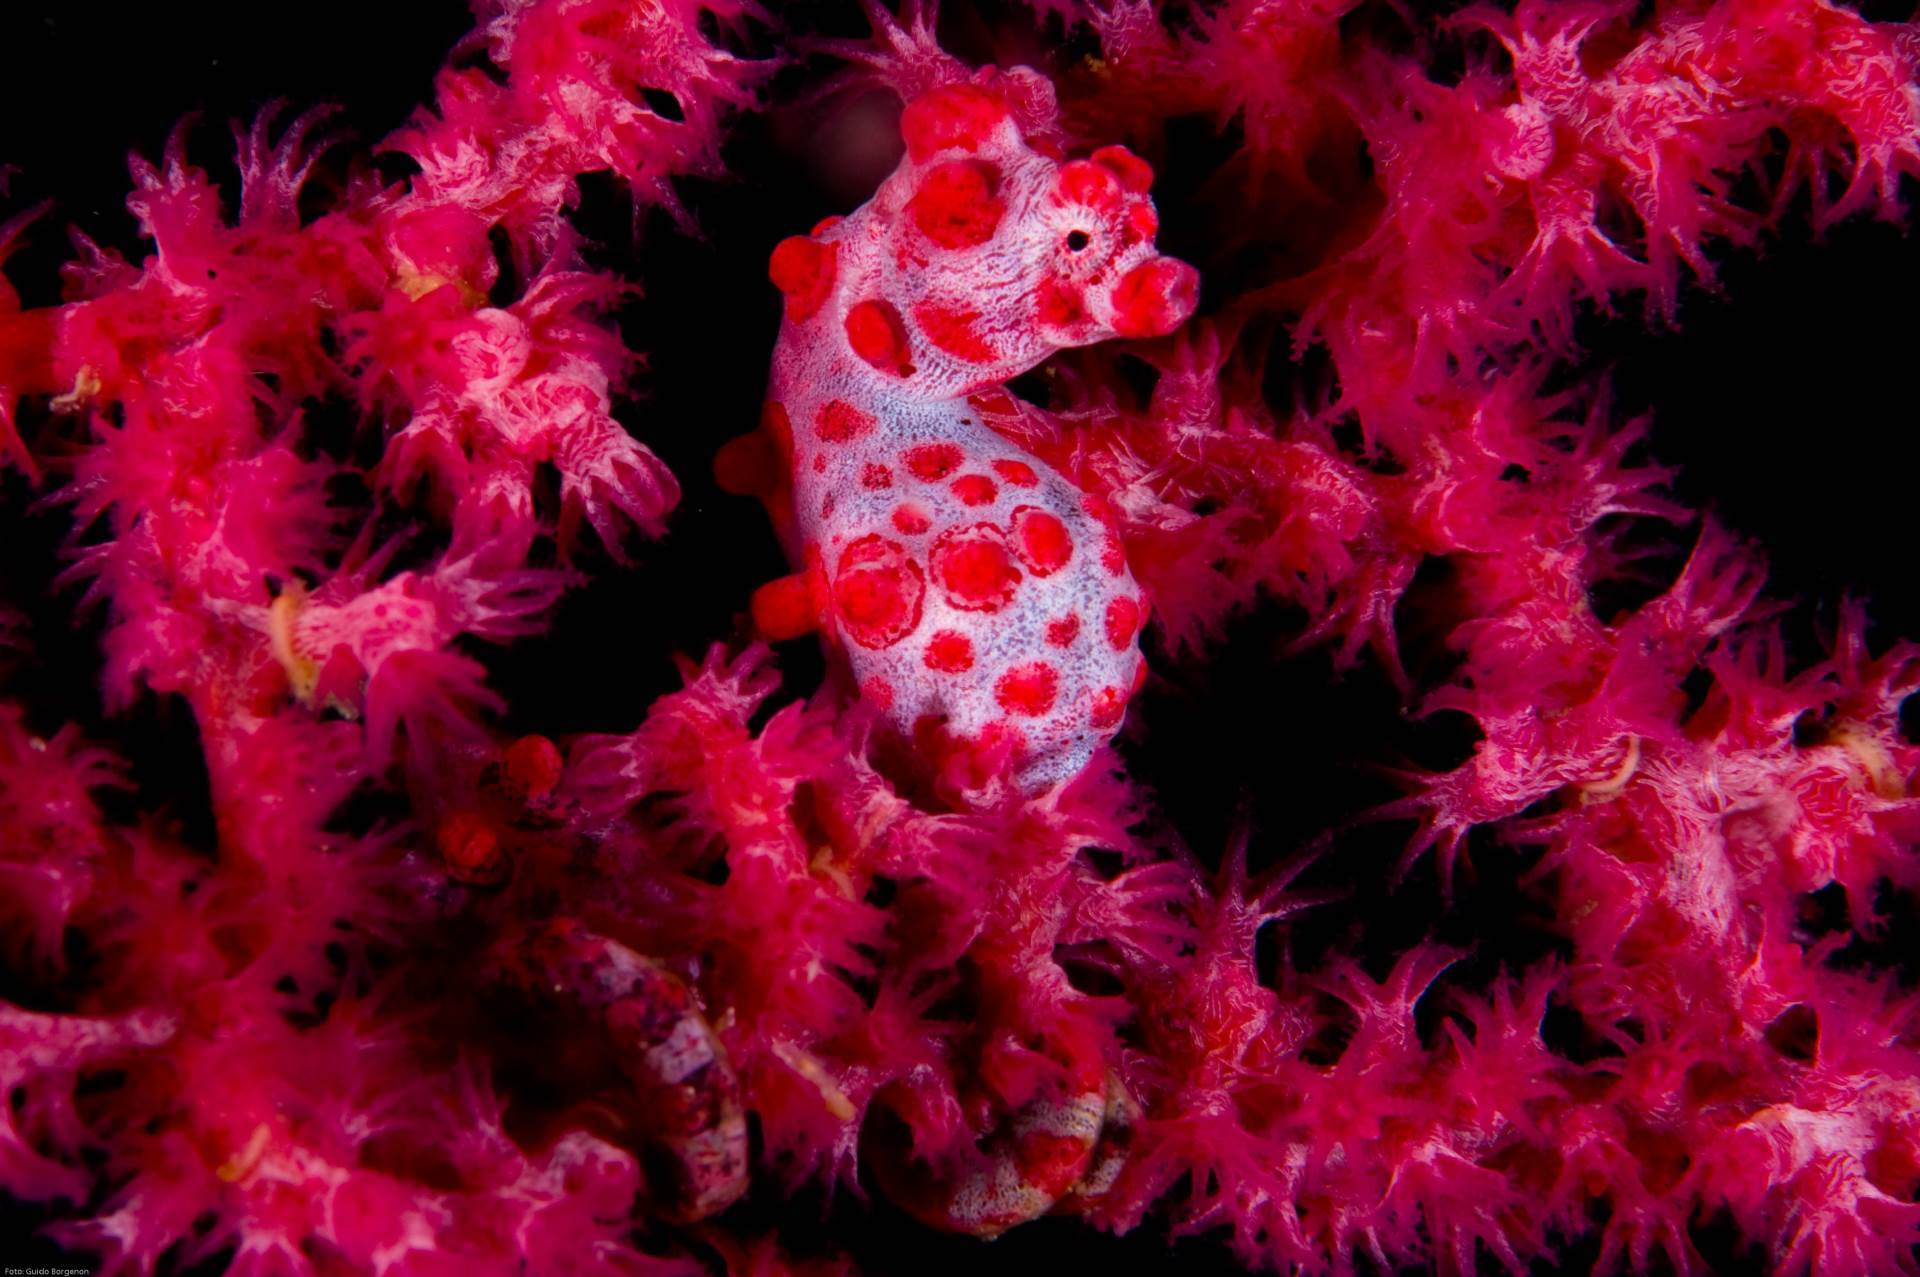 A Bargibant's seahorse (H. bargibanti) spotted in  Komodo, Indonesia. Photo by Guido Borgenon/Guylian Seahorses of the World